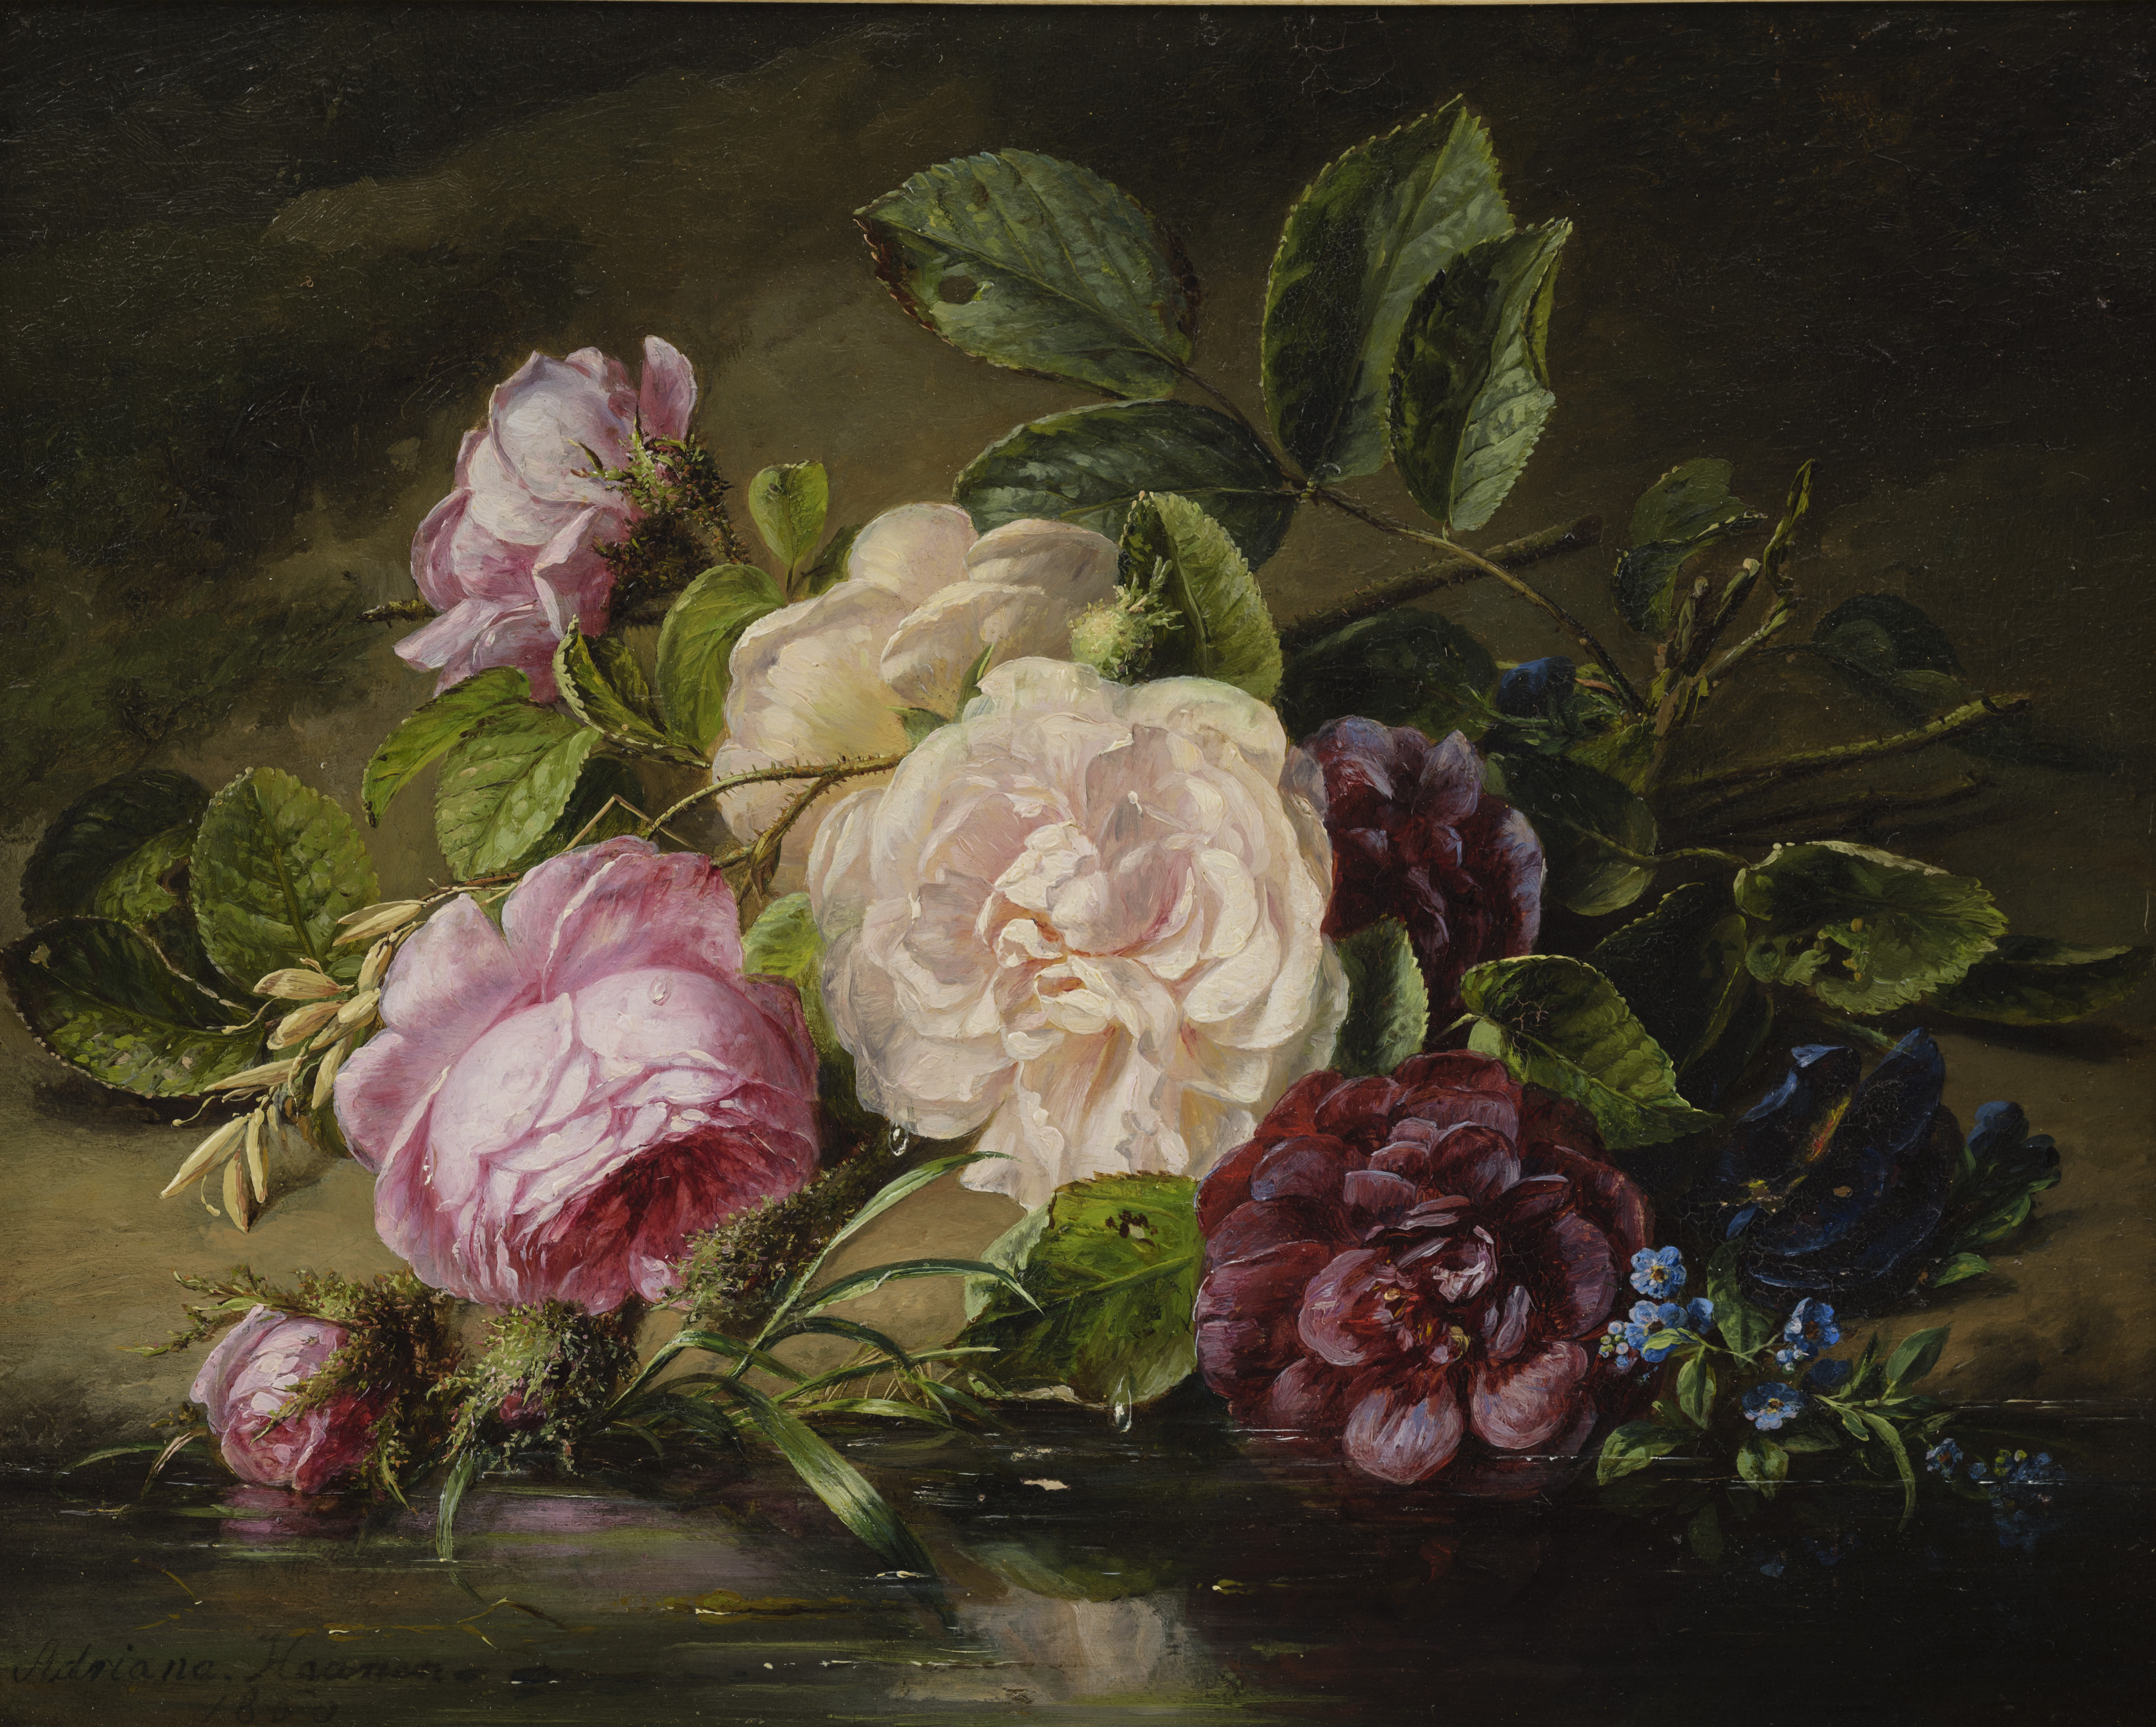 Adriana Haanen | A still life of roses on a river bank | Kunsthandel Bies | Bies Gallery